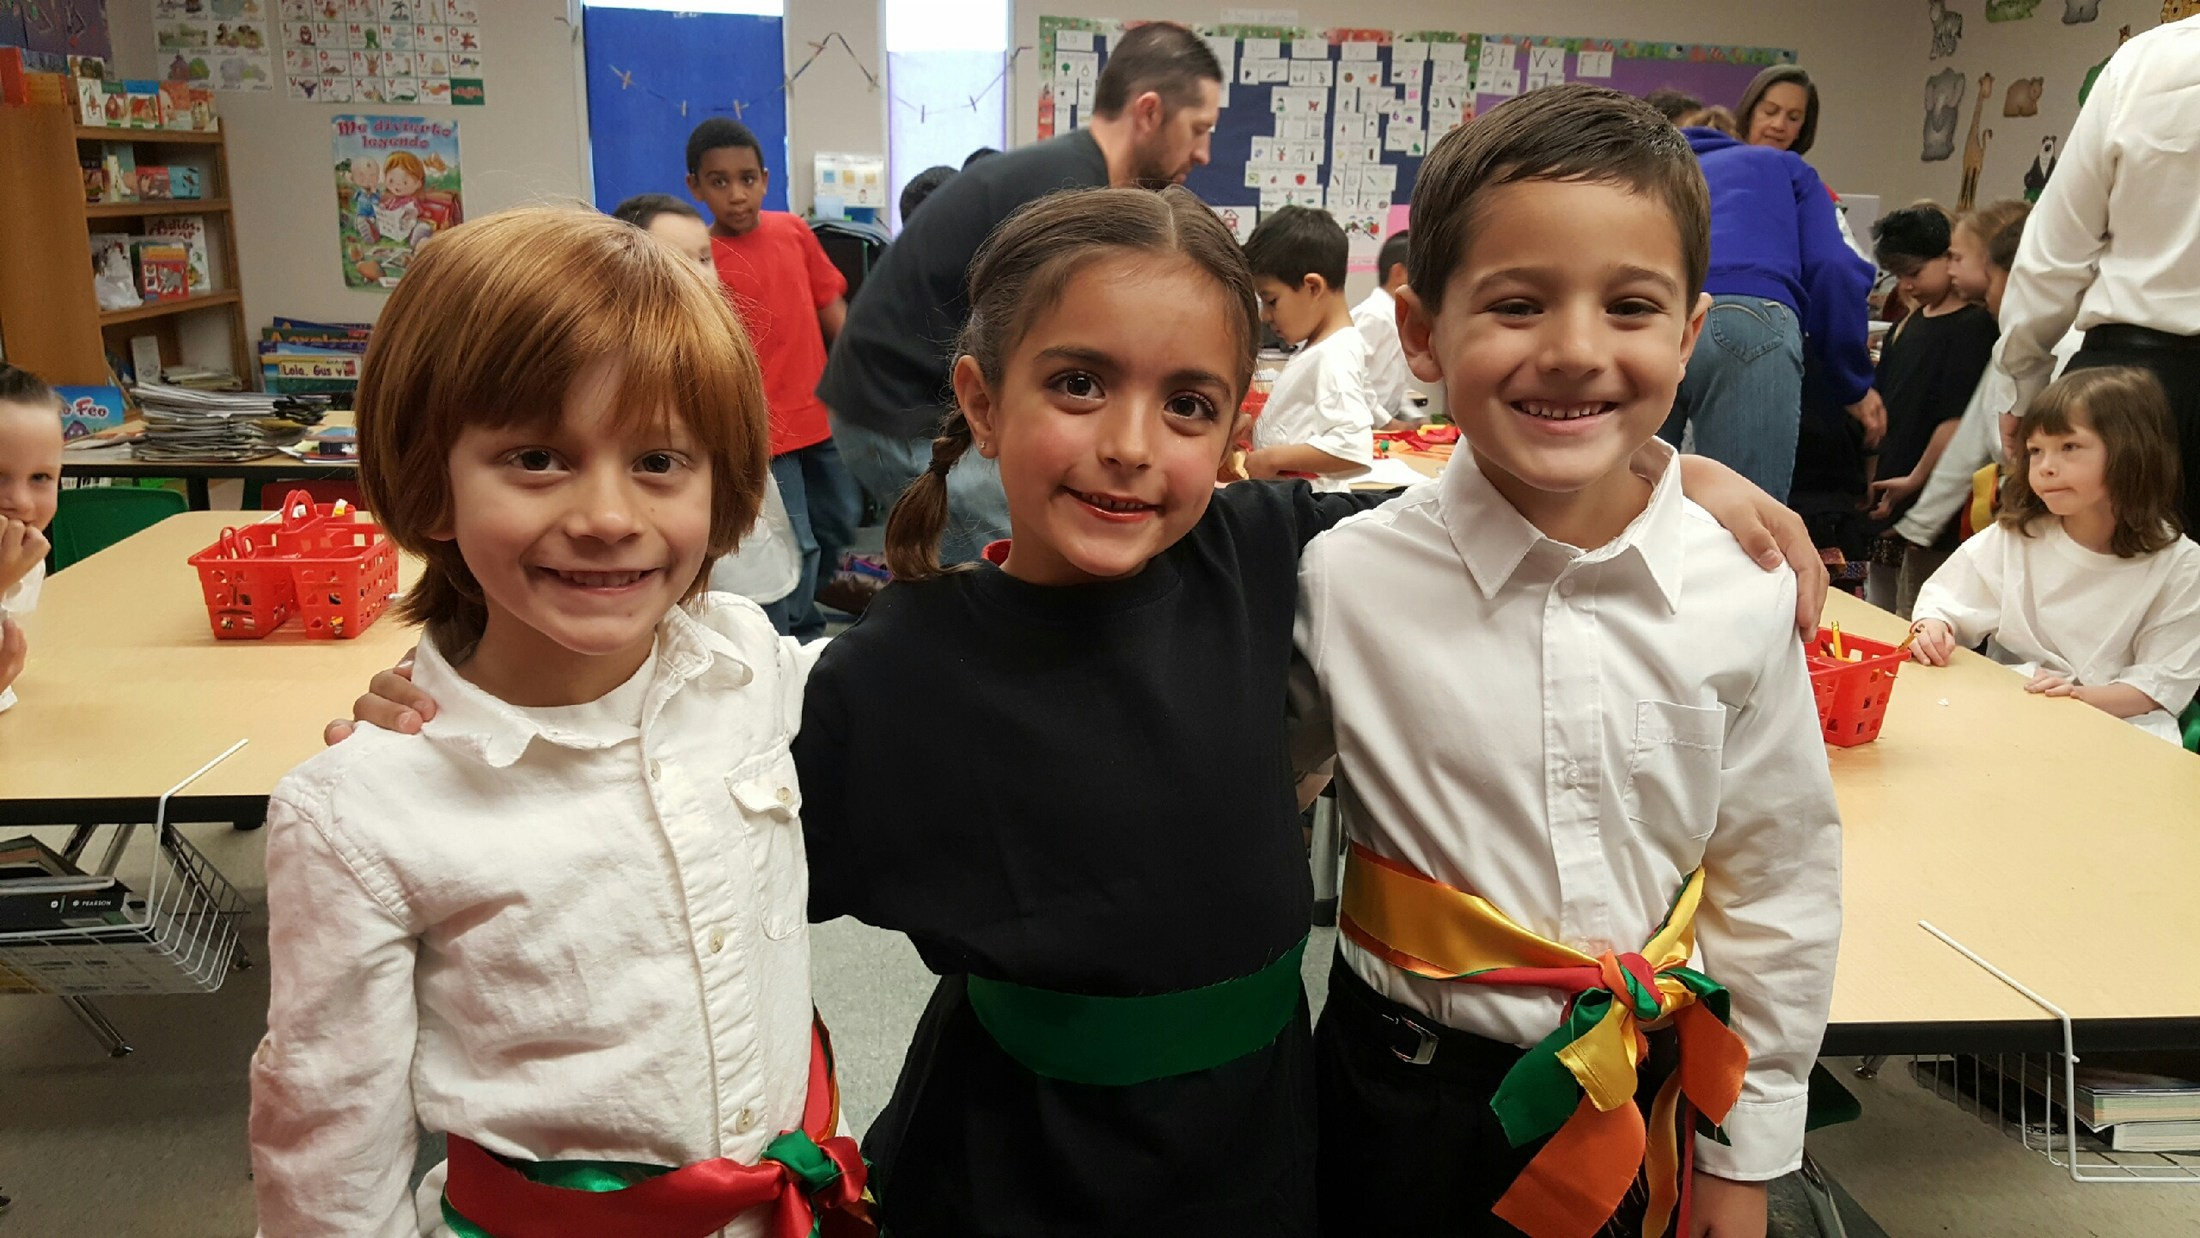 Two boys and one girl student wearing colorful heritage sashes during International Day